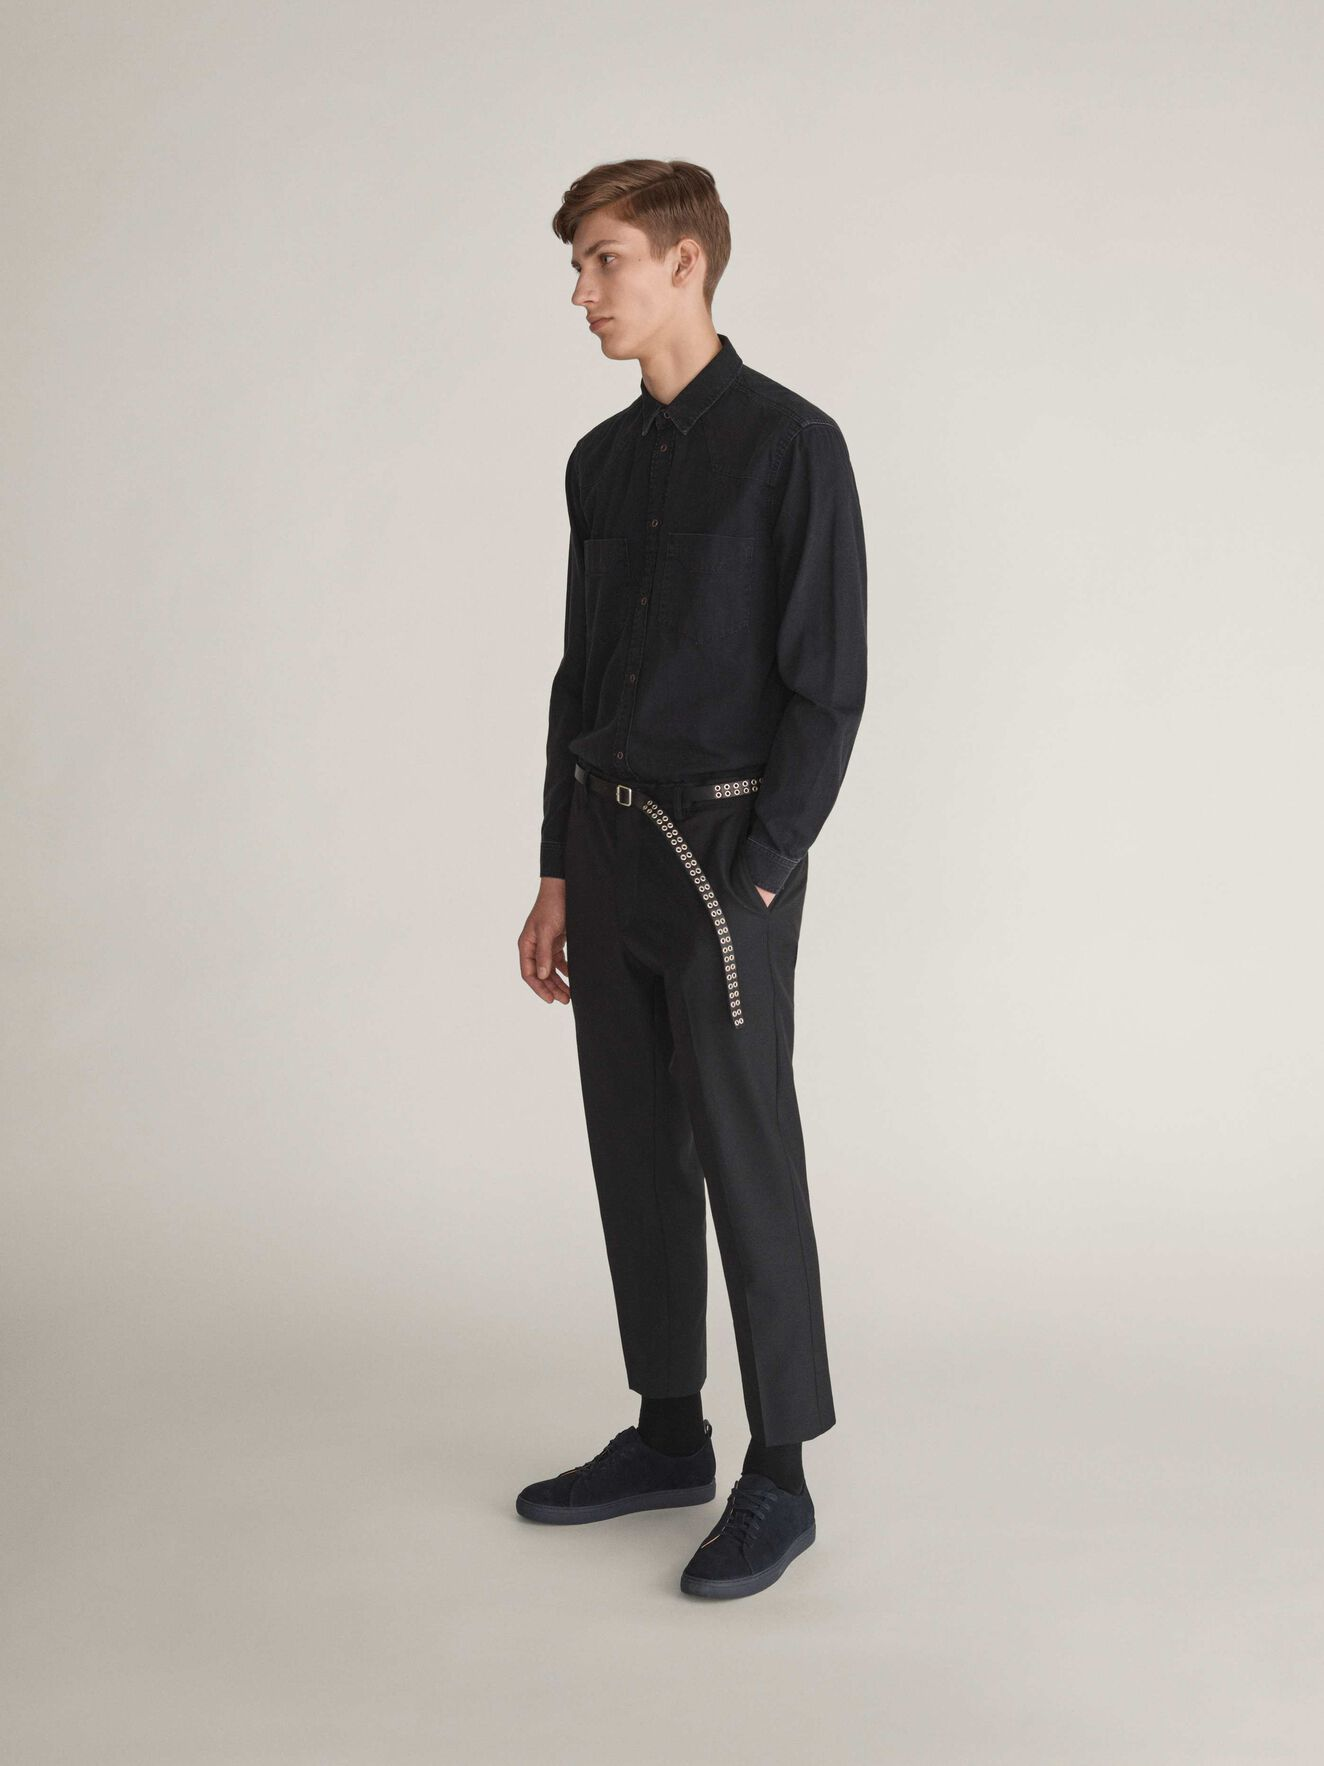 East Hose in Black from Tiger of Sweden